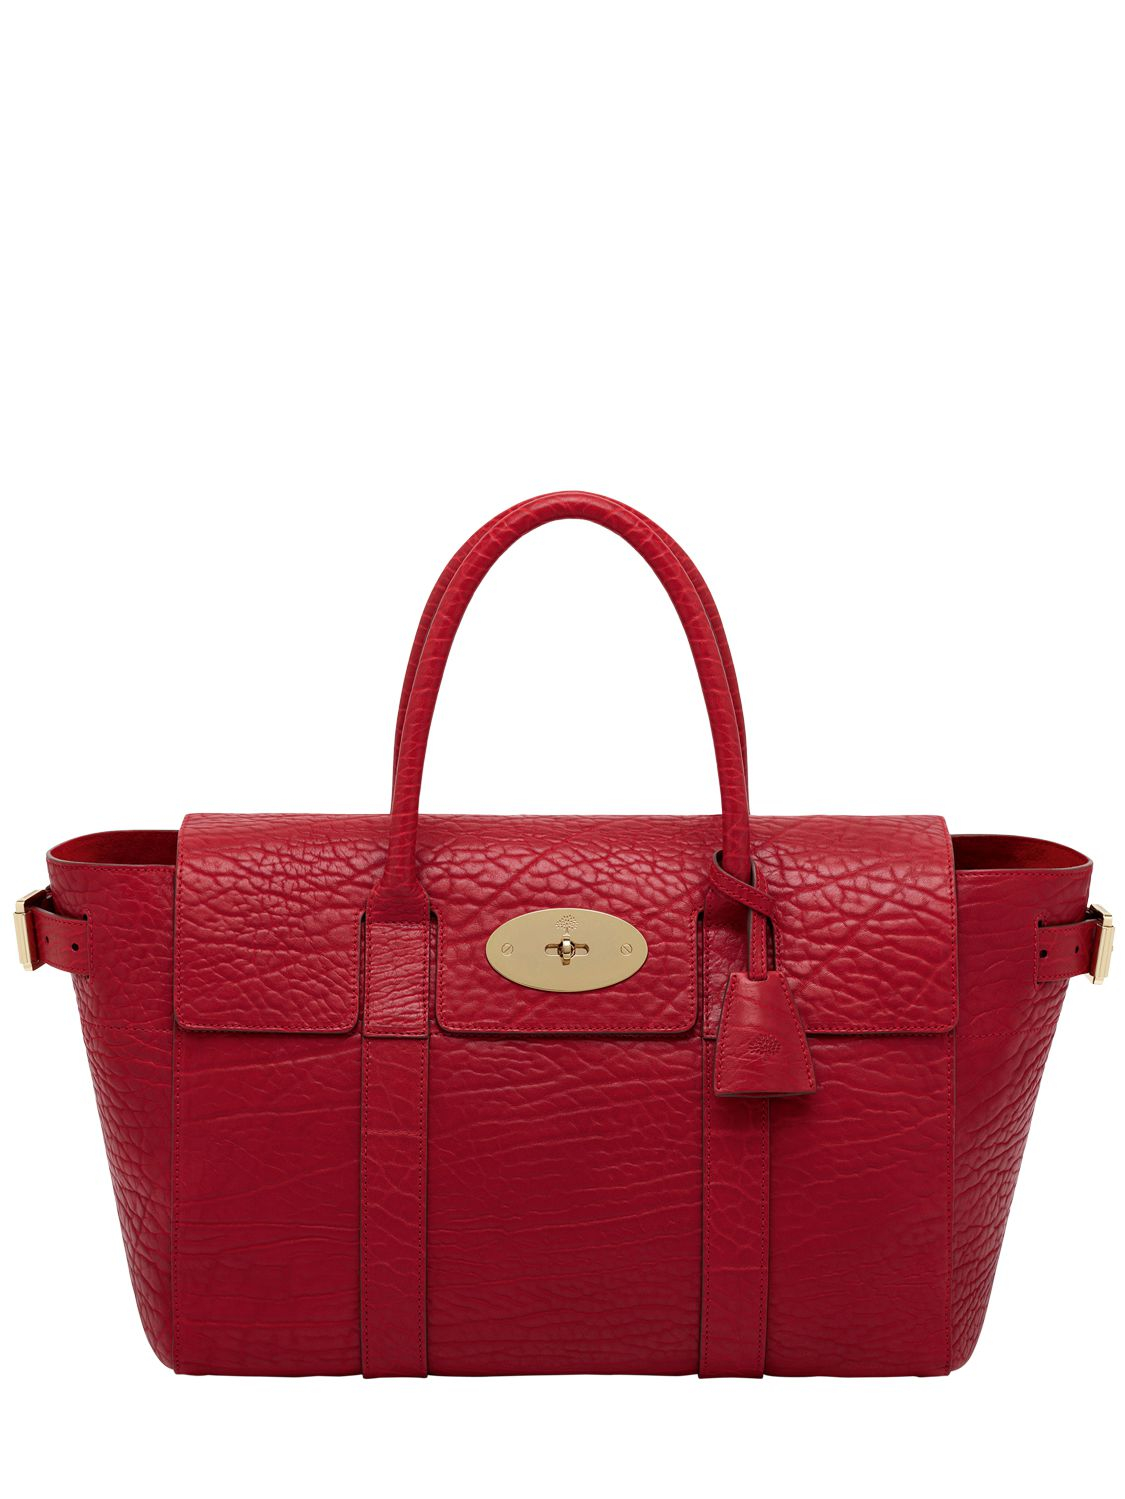 48356a975a Mulberry Large Bayswater Shrunken Leather Bag in Red - Lyst